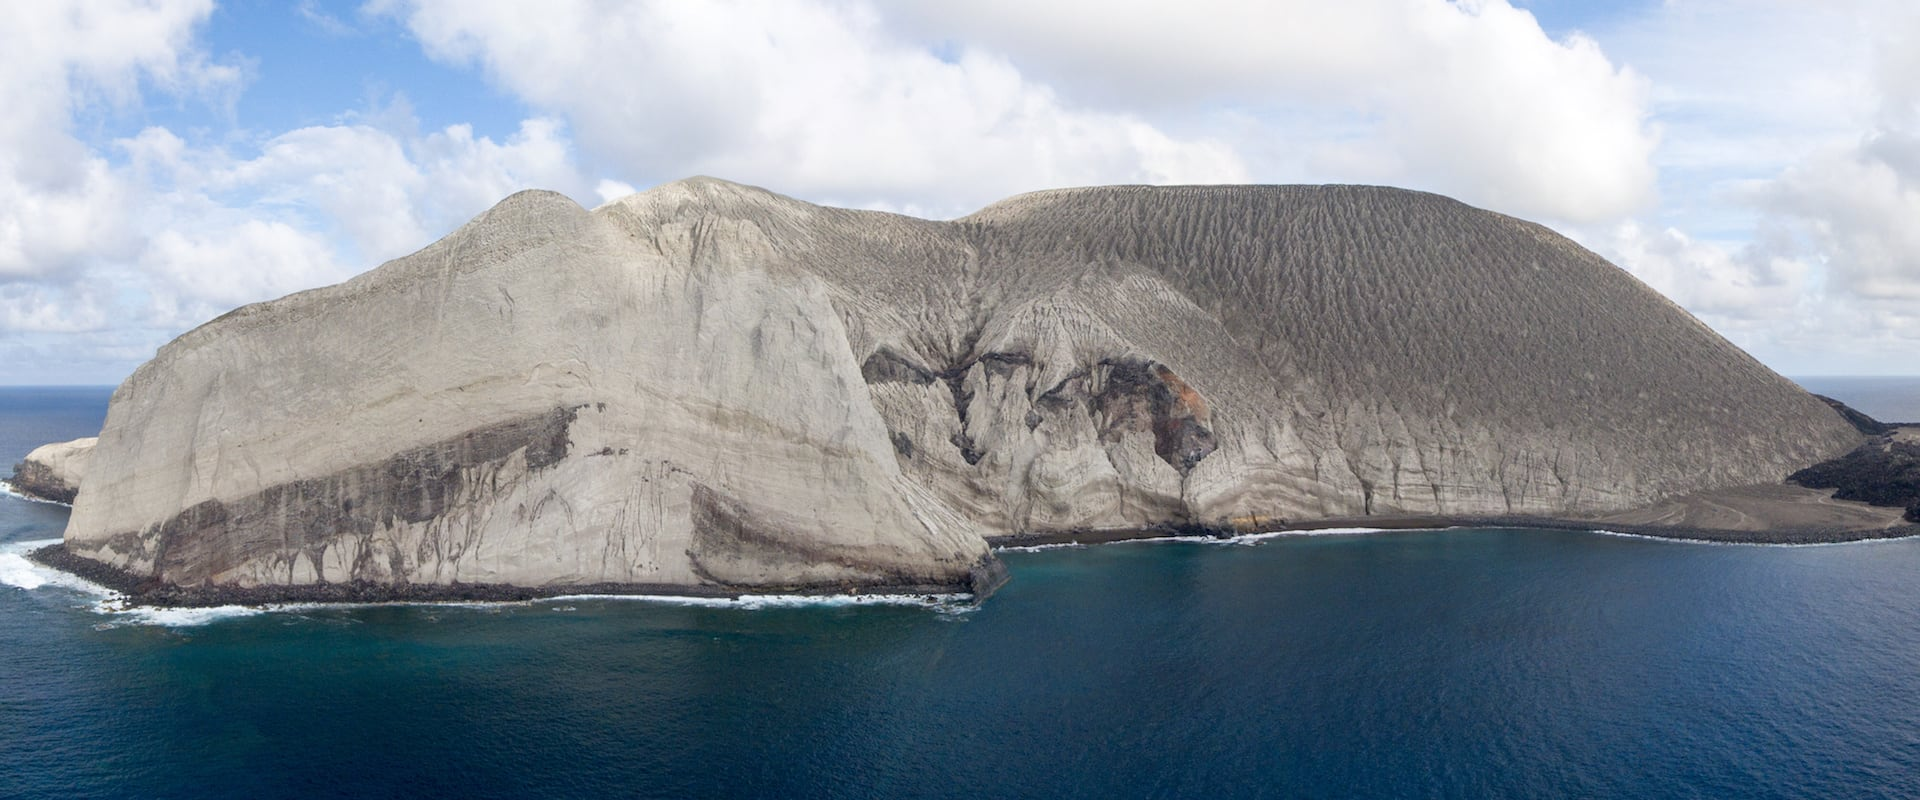 Socorro Islands Liveaboard Diving